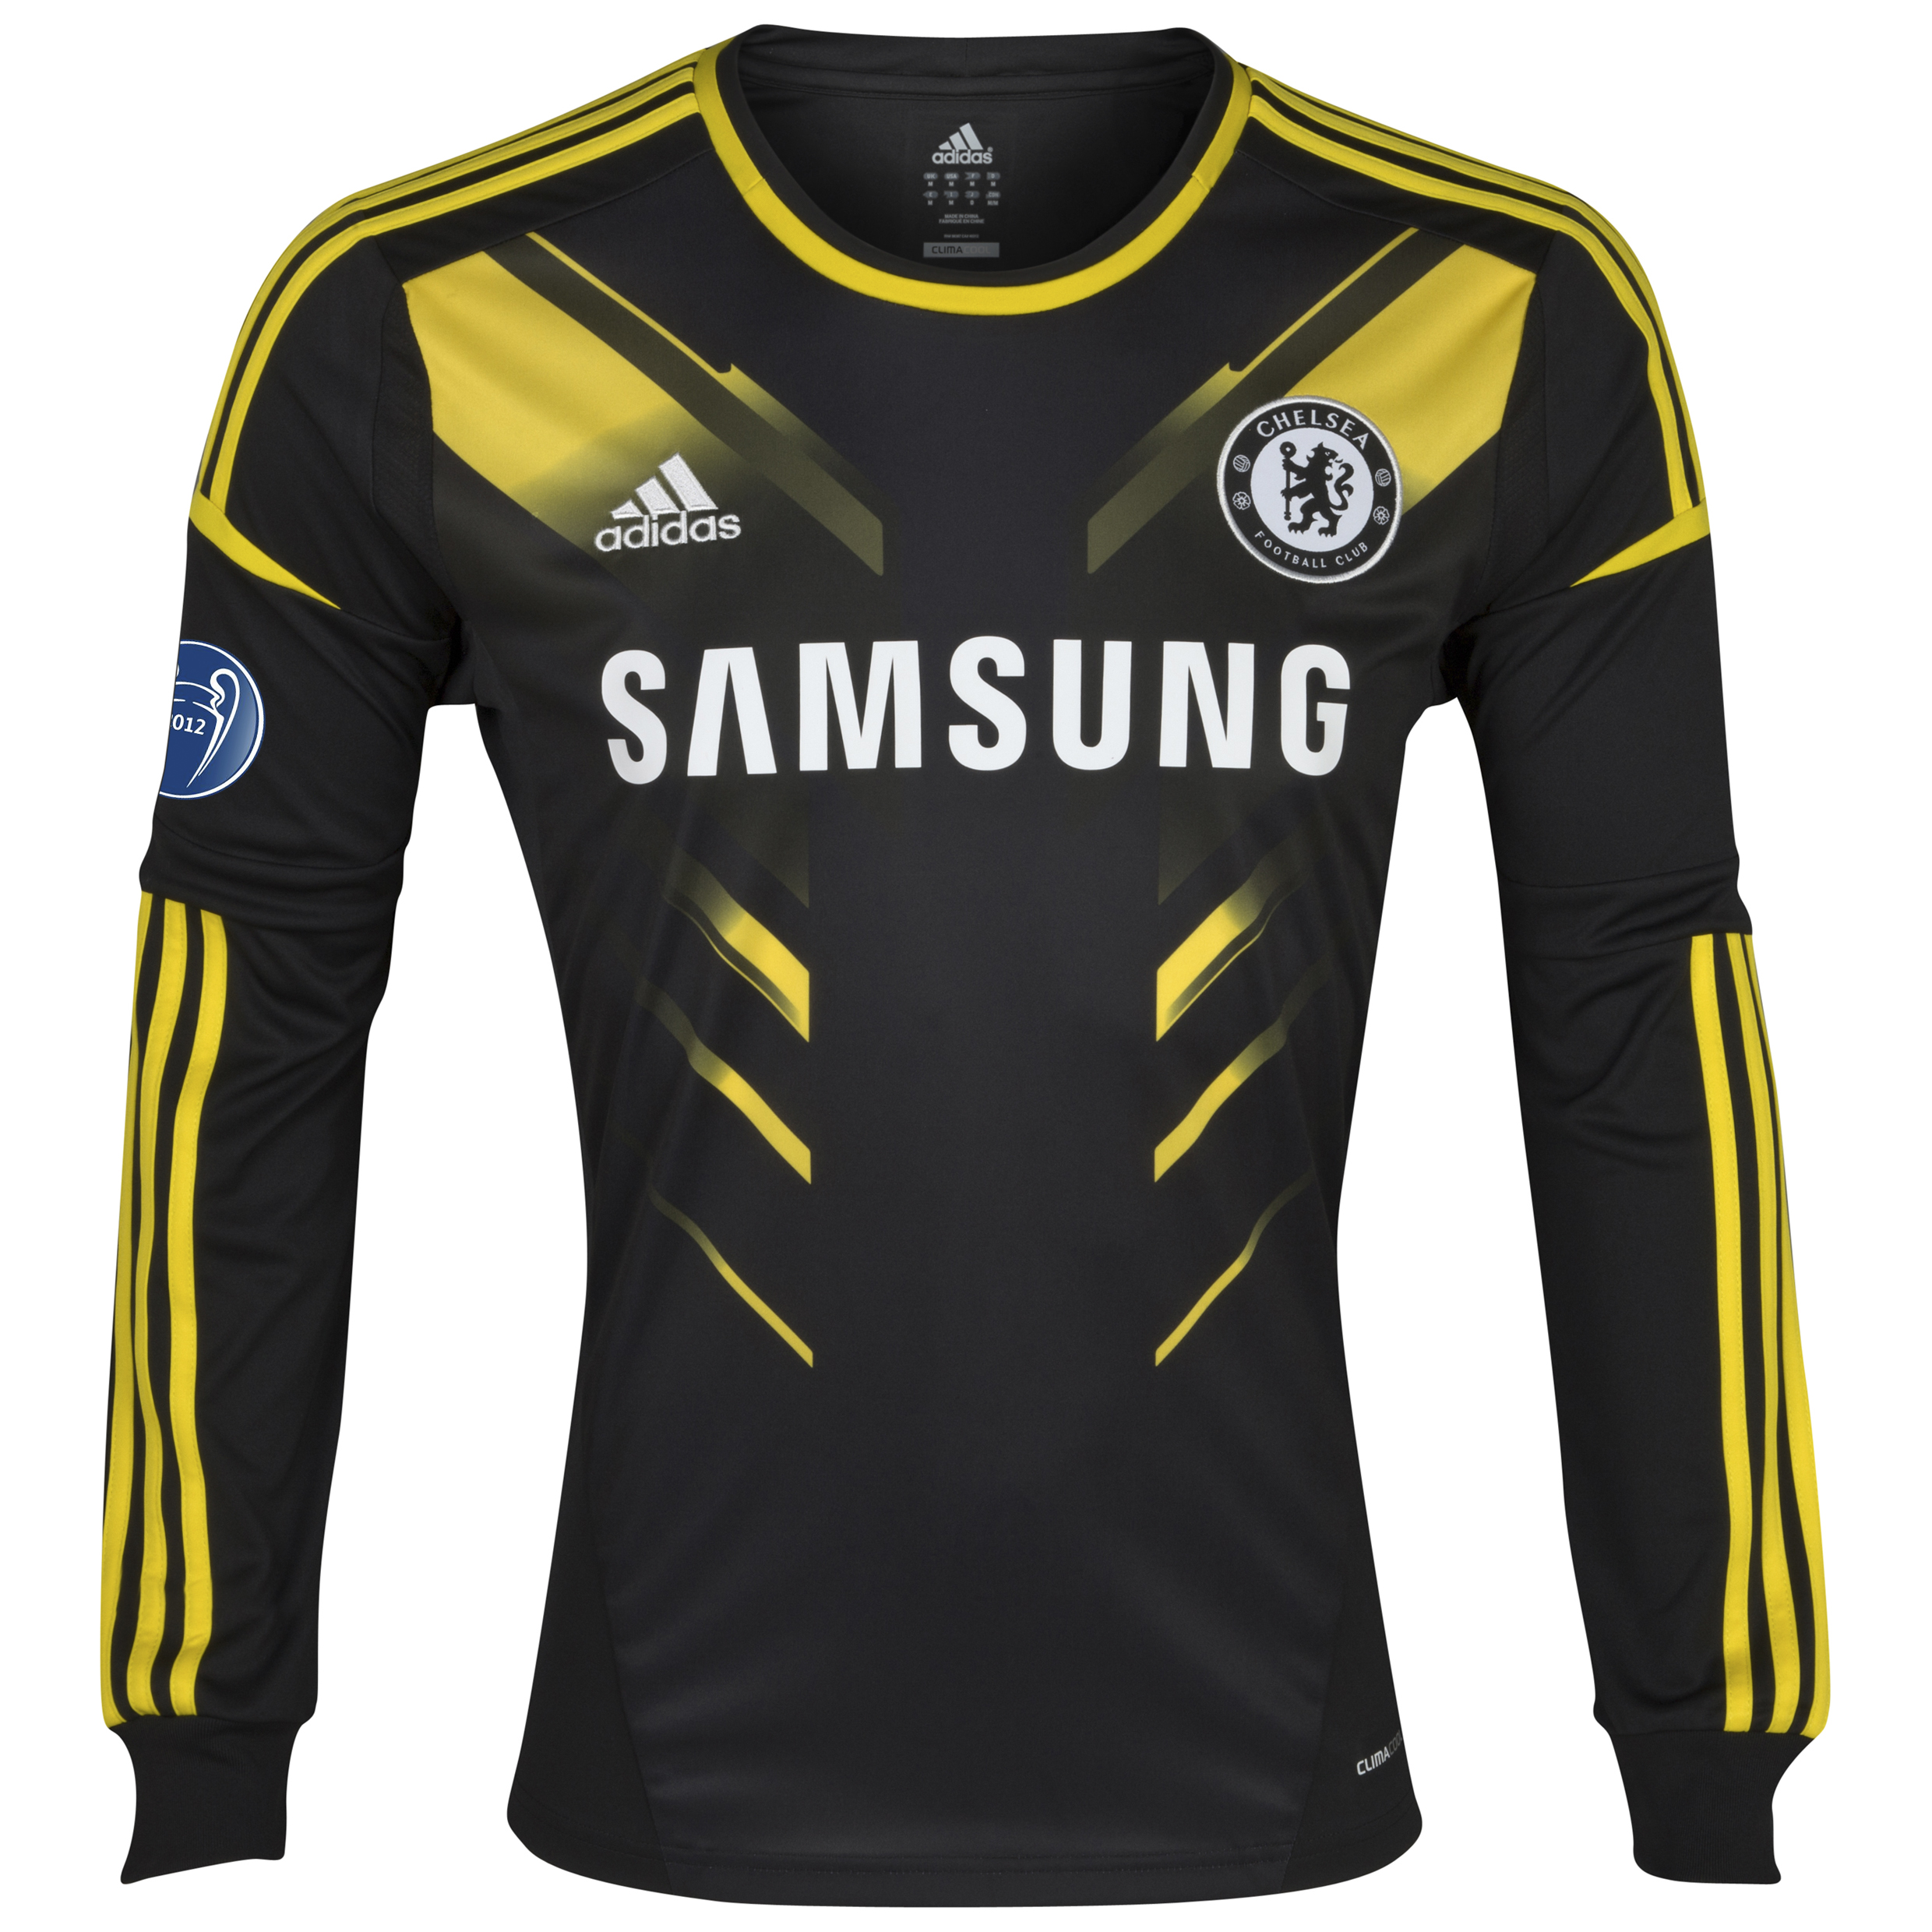 Chelsea UEFA Champions League Third Shirt 2012/13 - Long Sleeved with Winners Badge